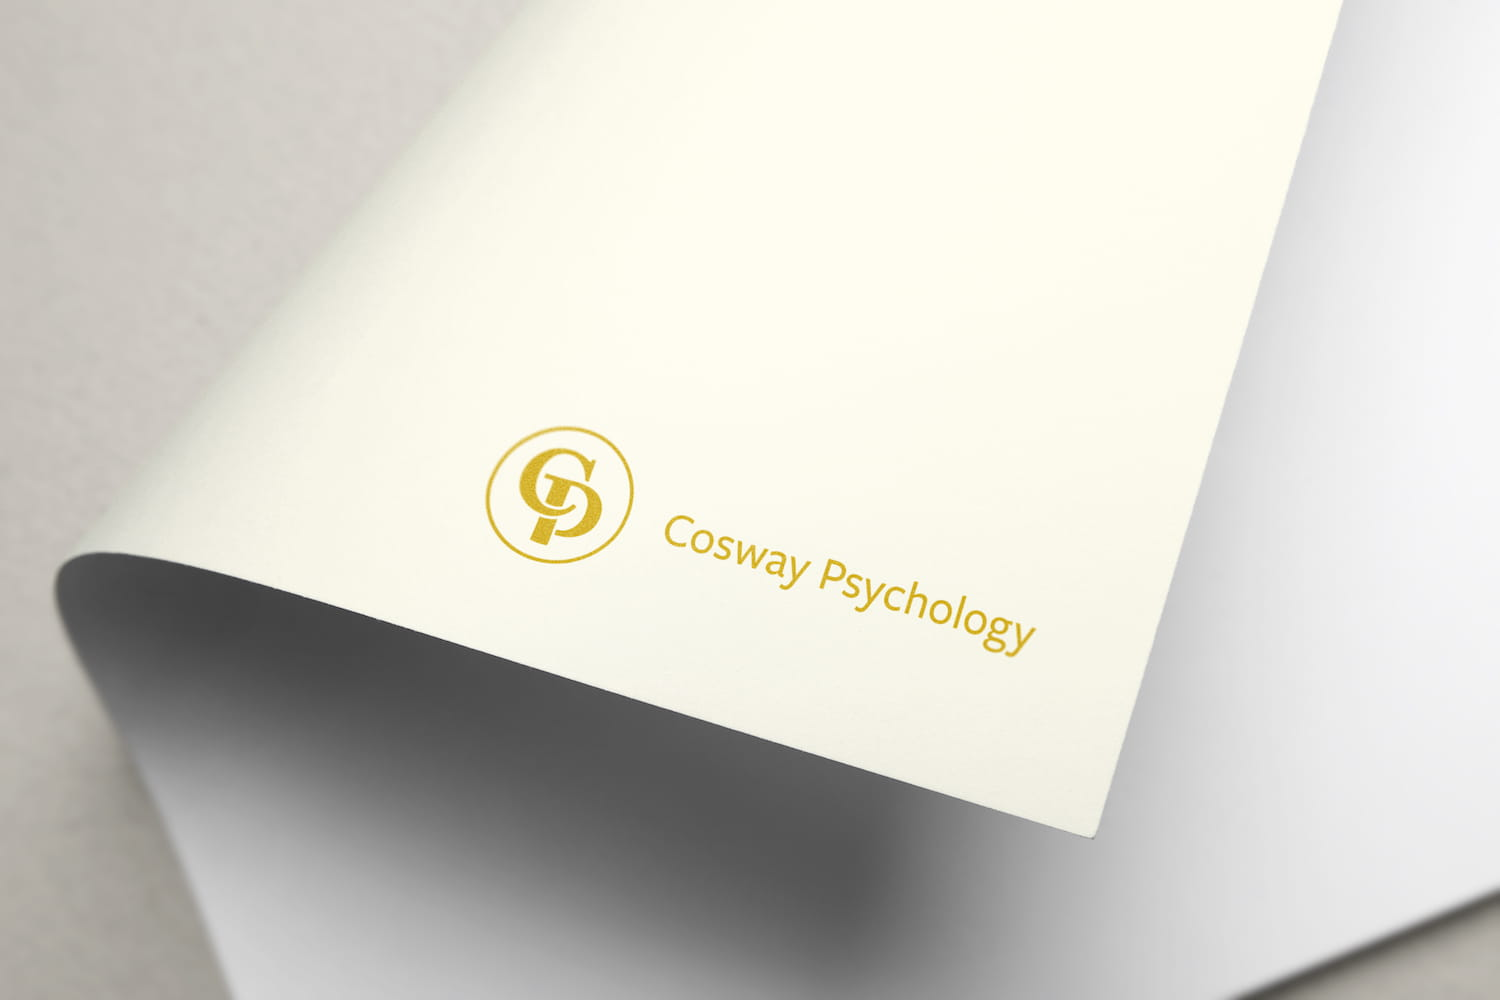 Cosway Psychology logo